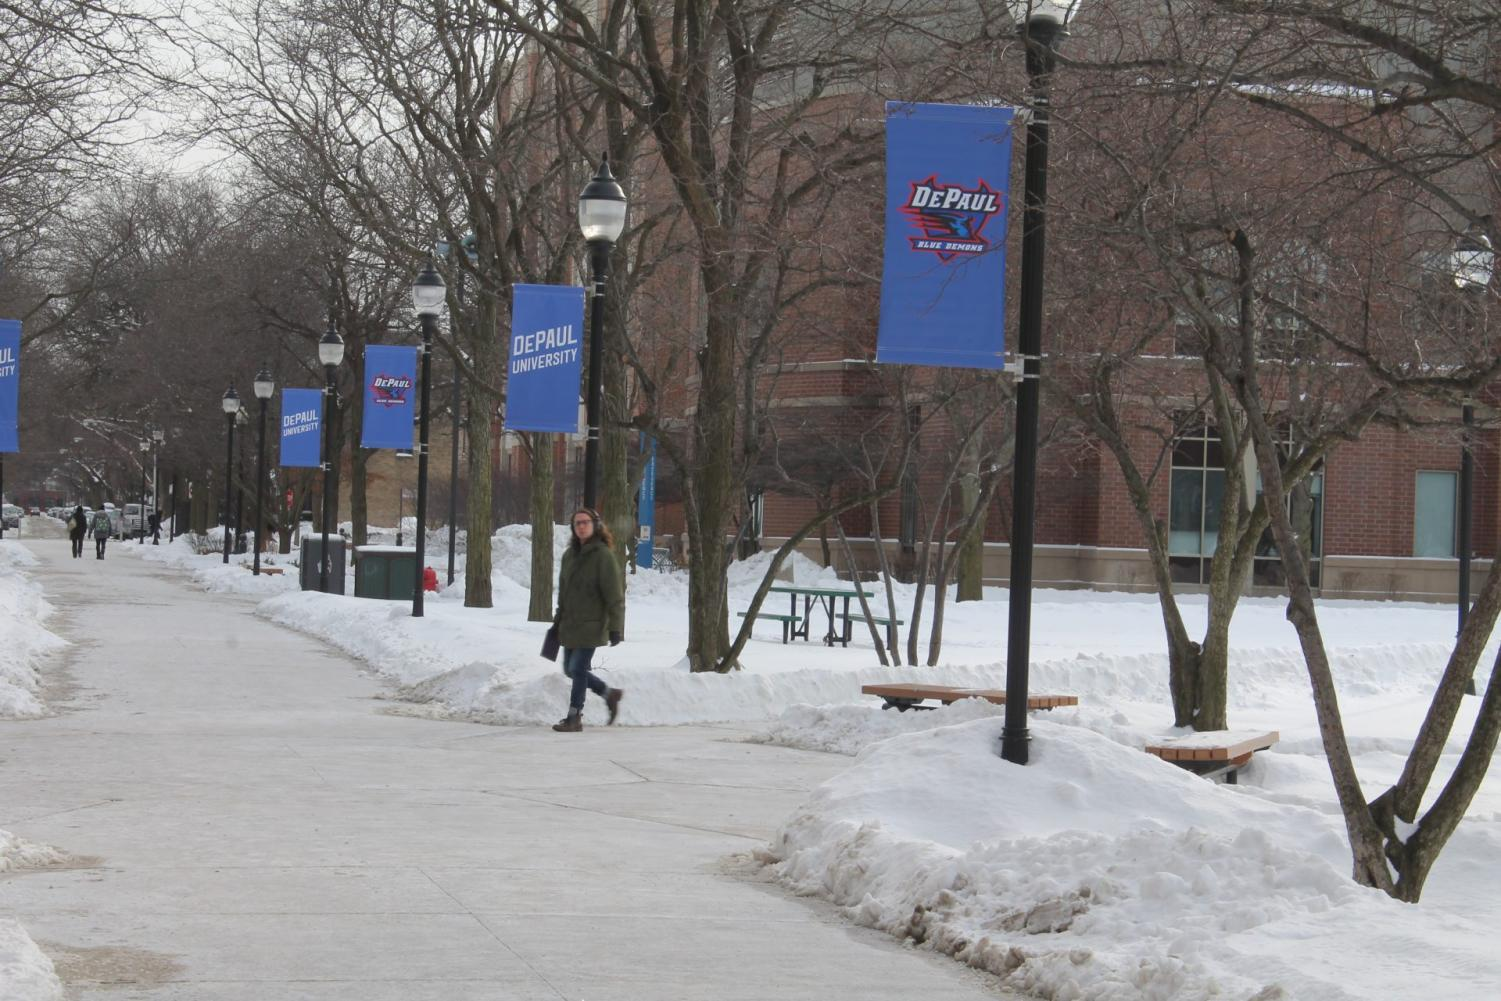 A student walks through the Quad on one of the coldest day's ever recorded in Chicago, Jan. 30, 2019. This day fell during the beginning of DePaul's Winter Quarter last year.